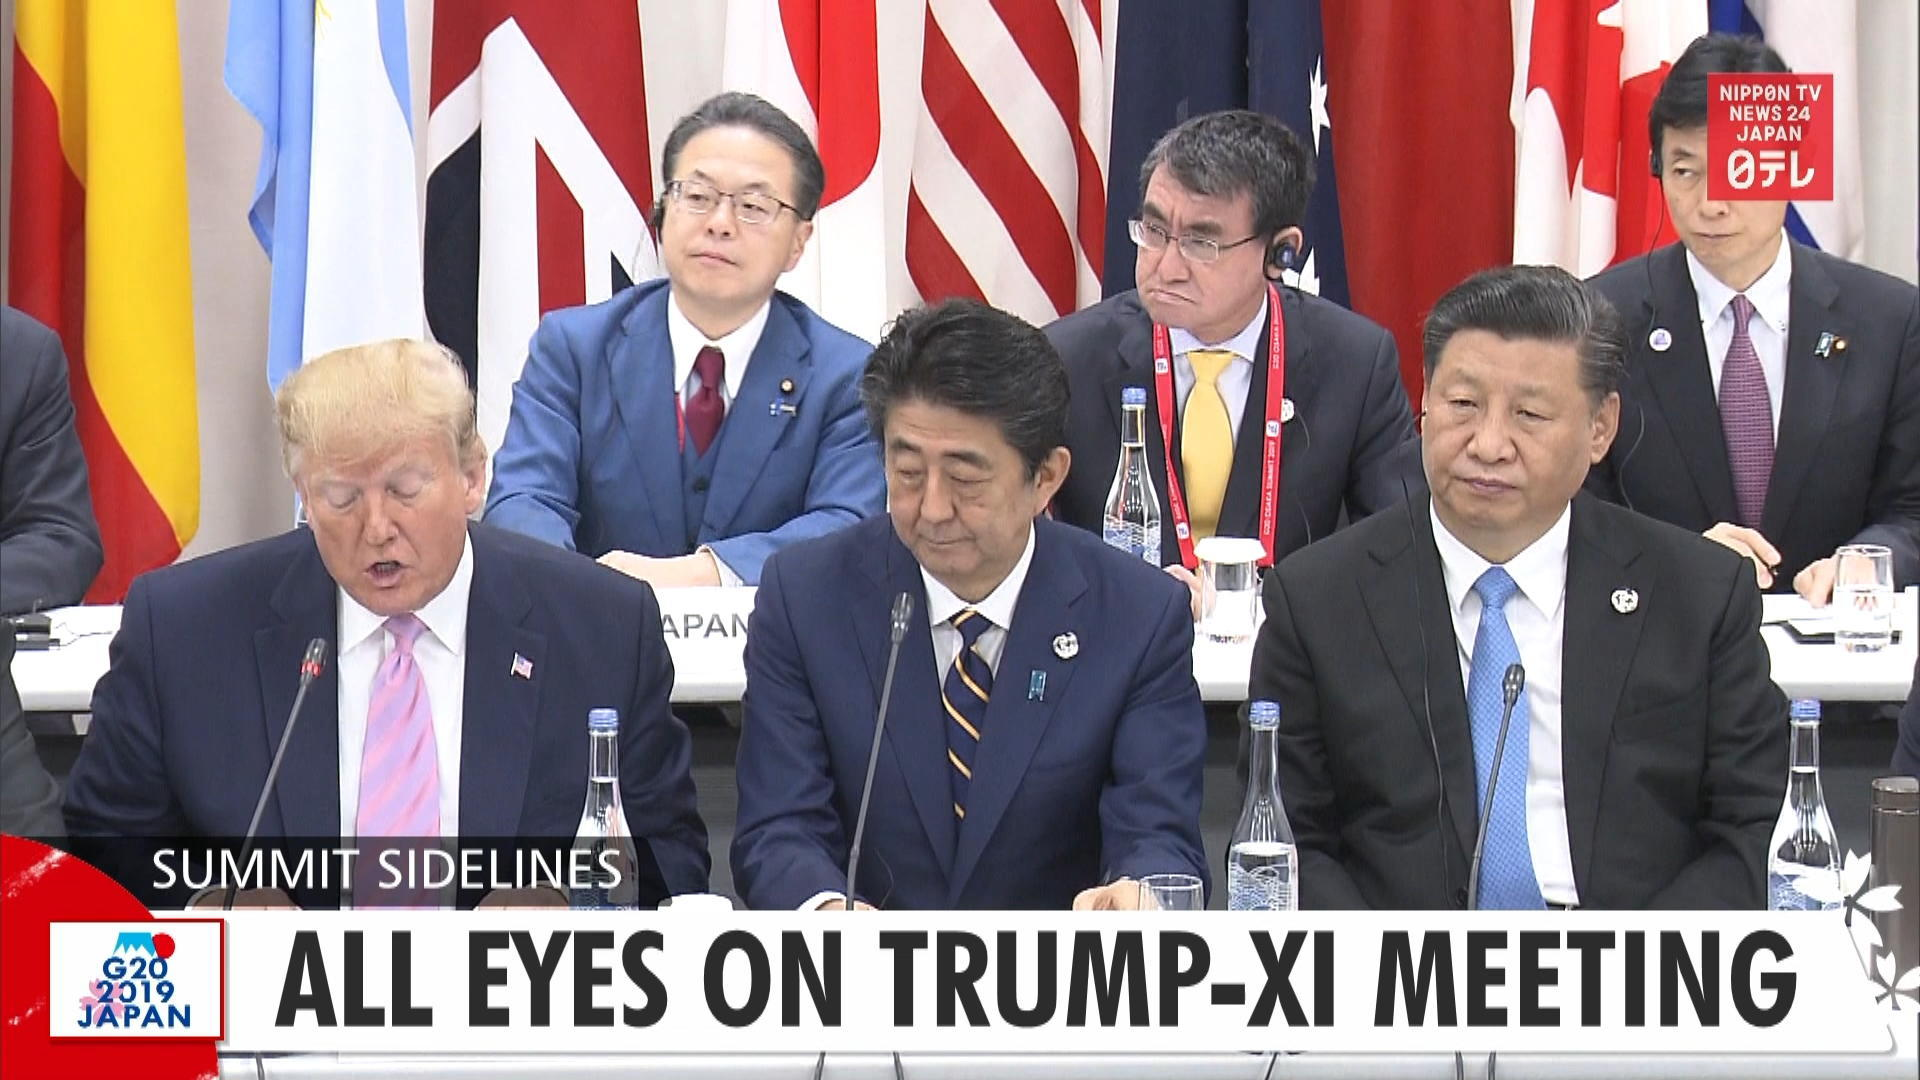 G20: All eyes on Trump-Xi meeting